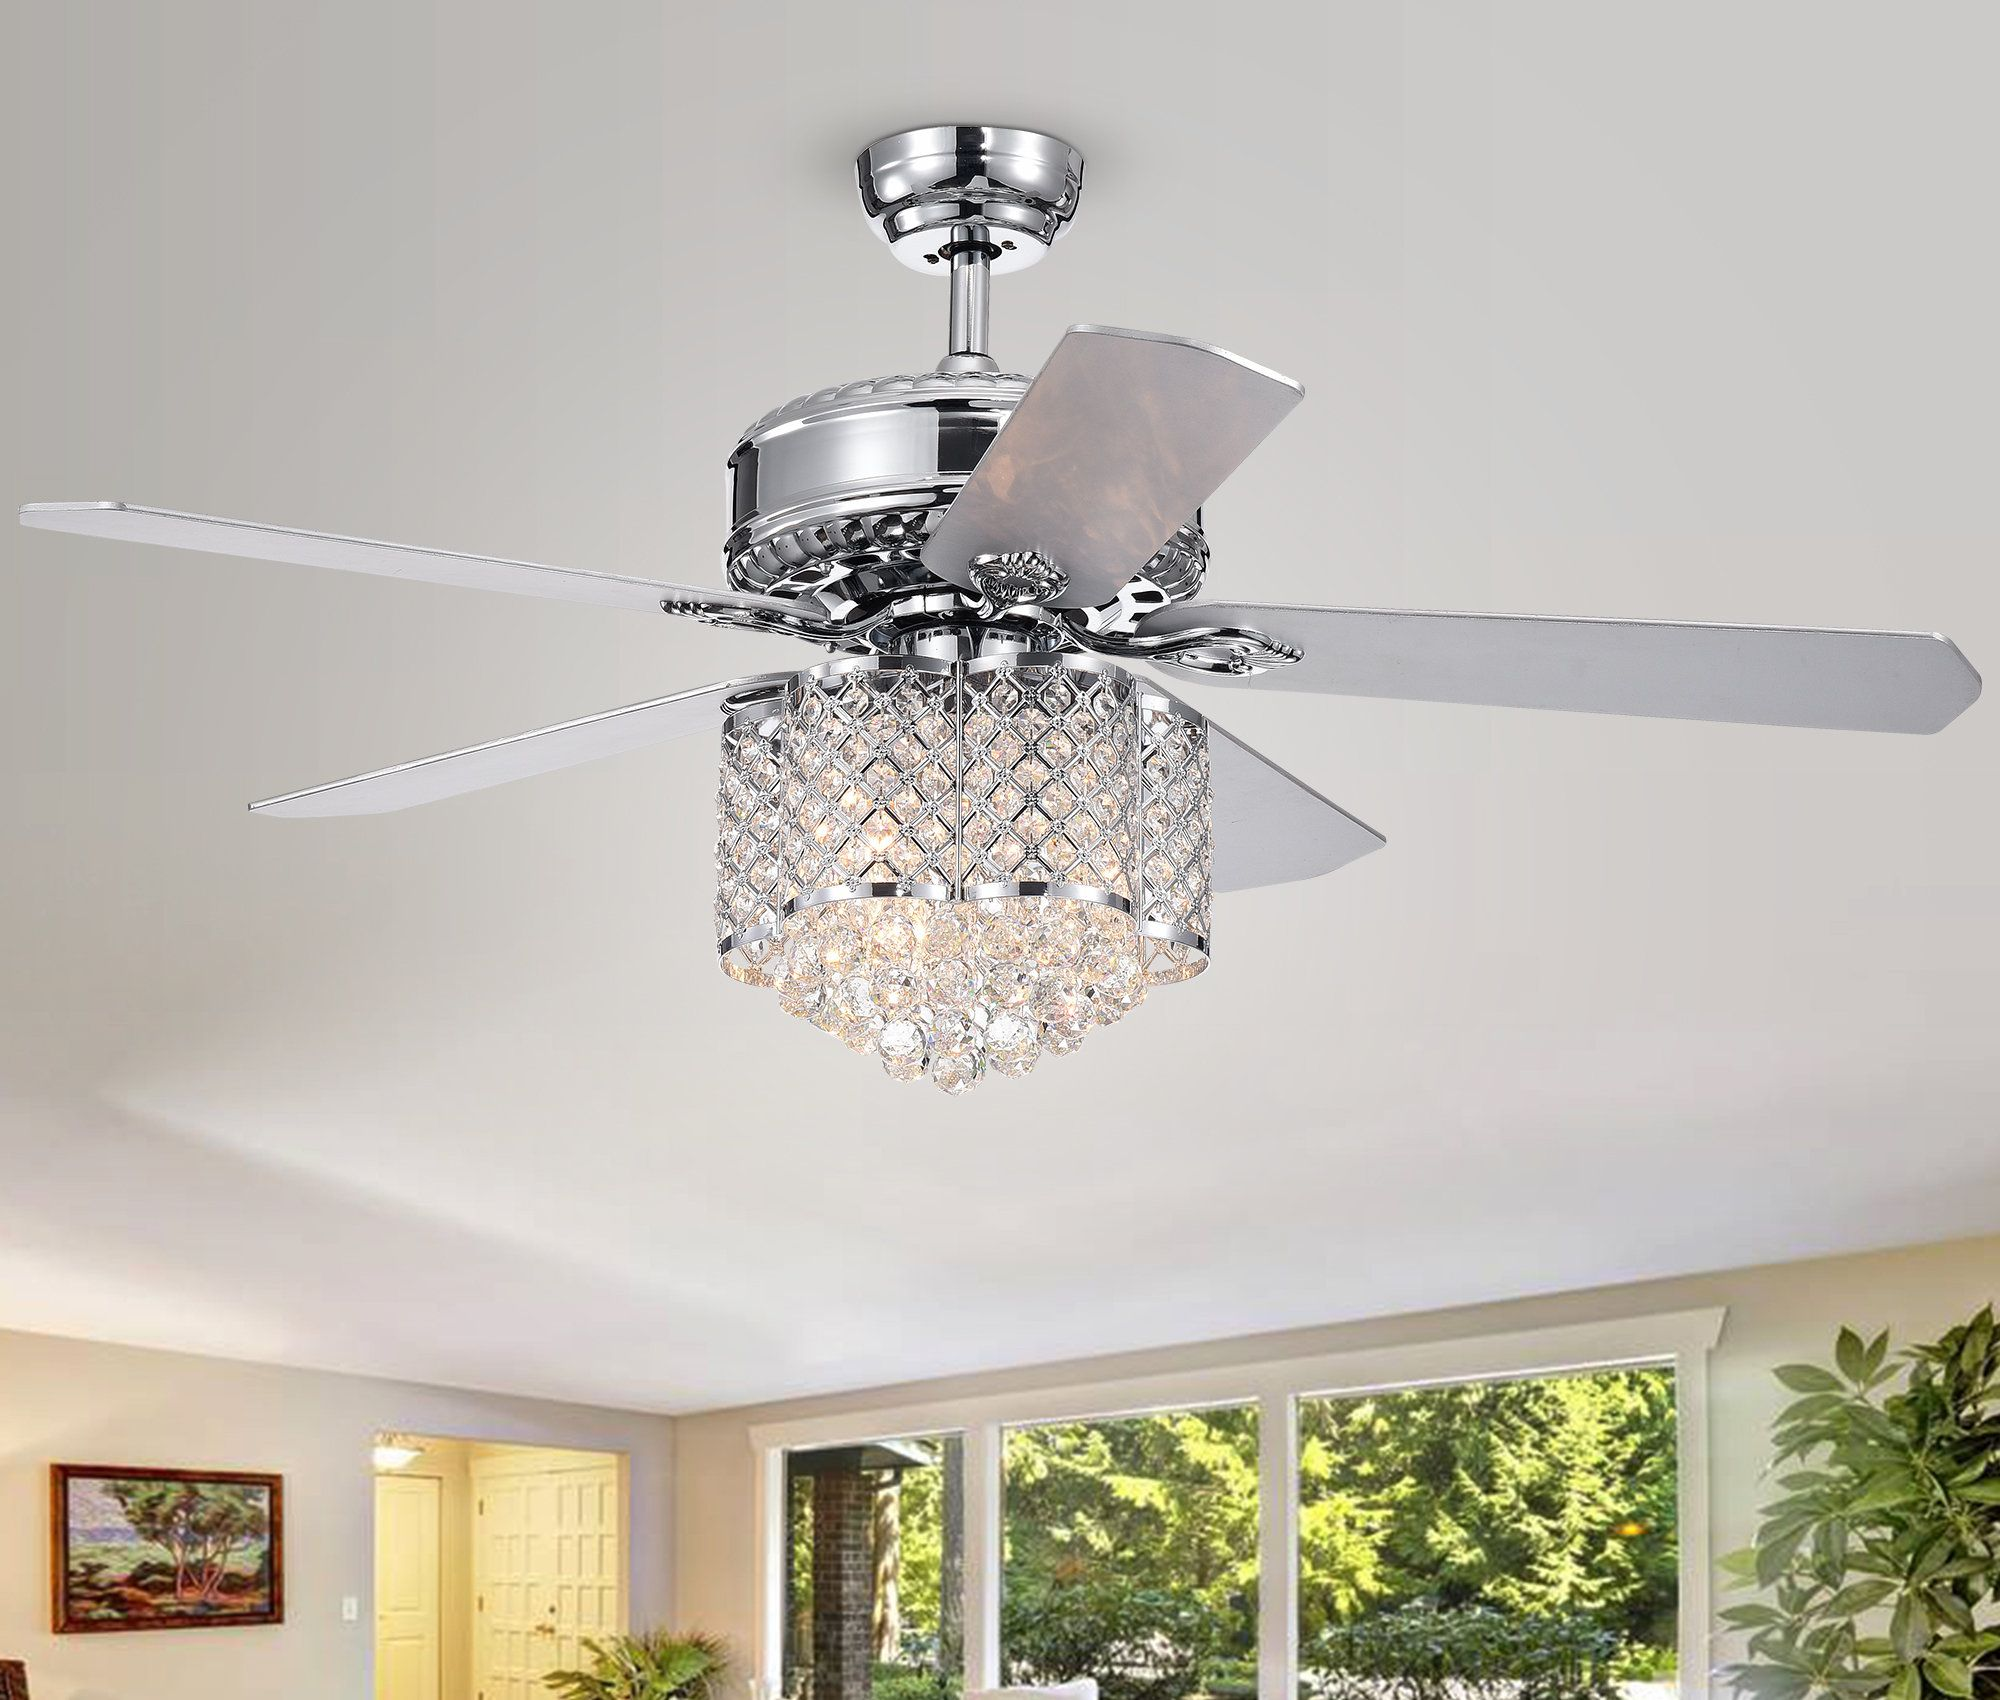 52 Wethington 5 Blade Ceiling Fan With Remote Light Kit Included